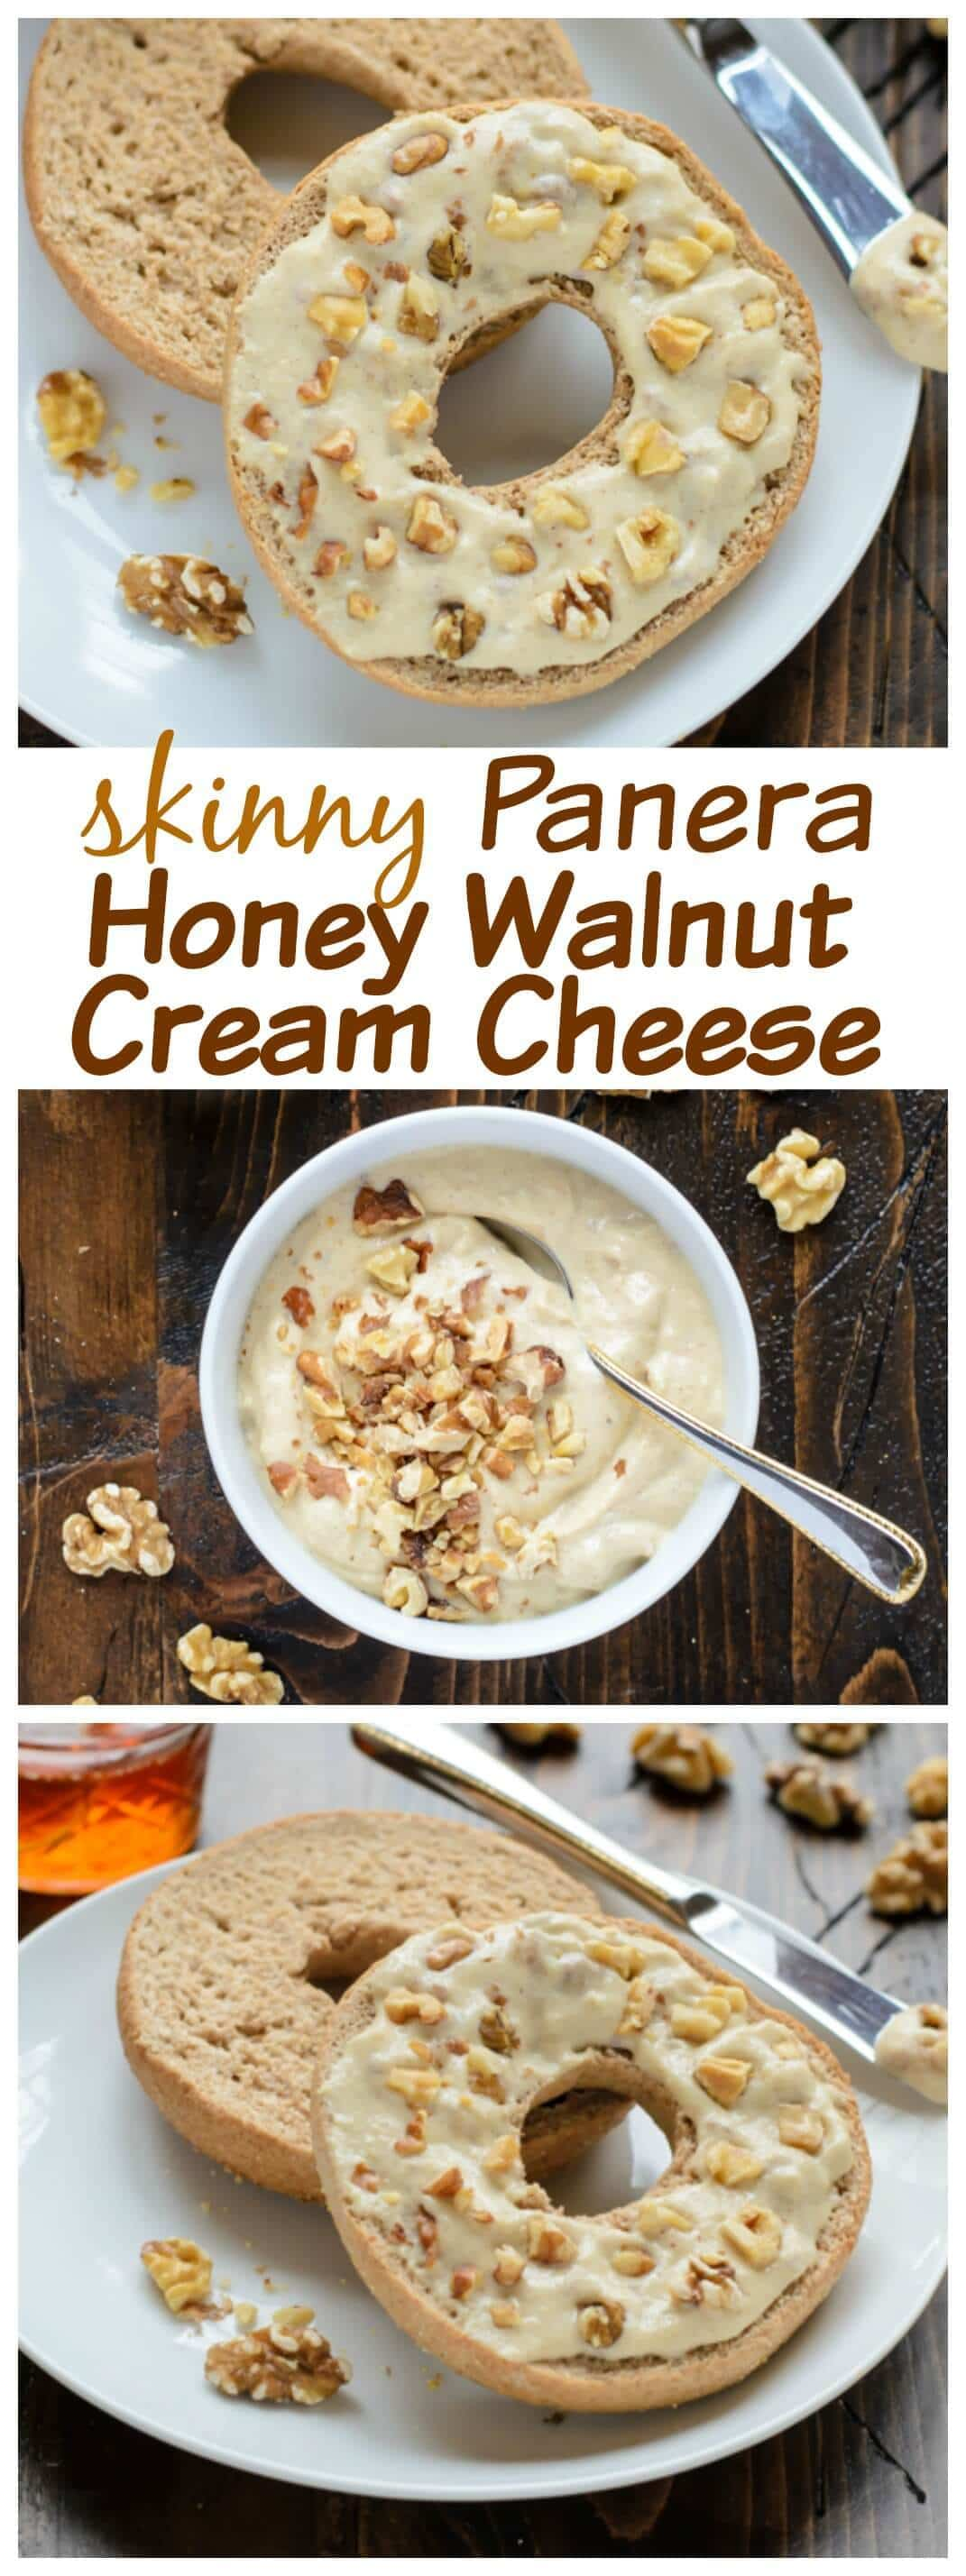 Skinny Copycat Panera Honey Walnut Cream Cheese made with tofu.